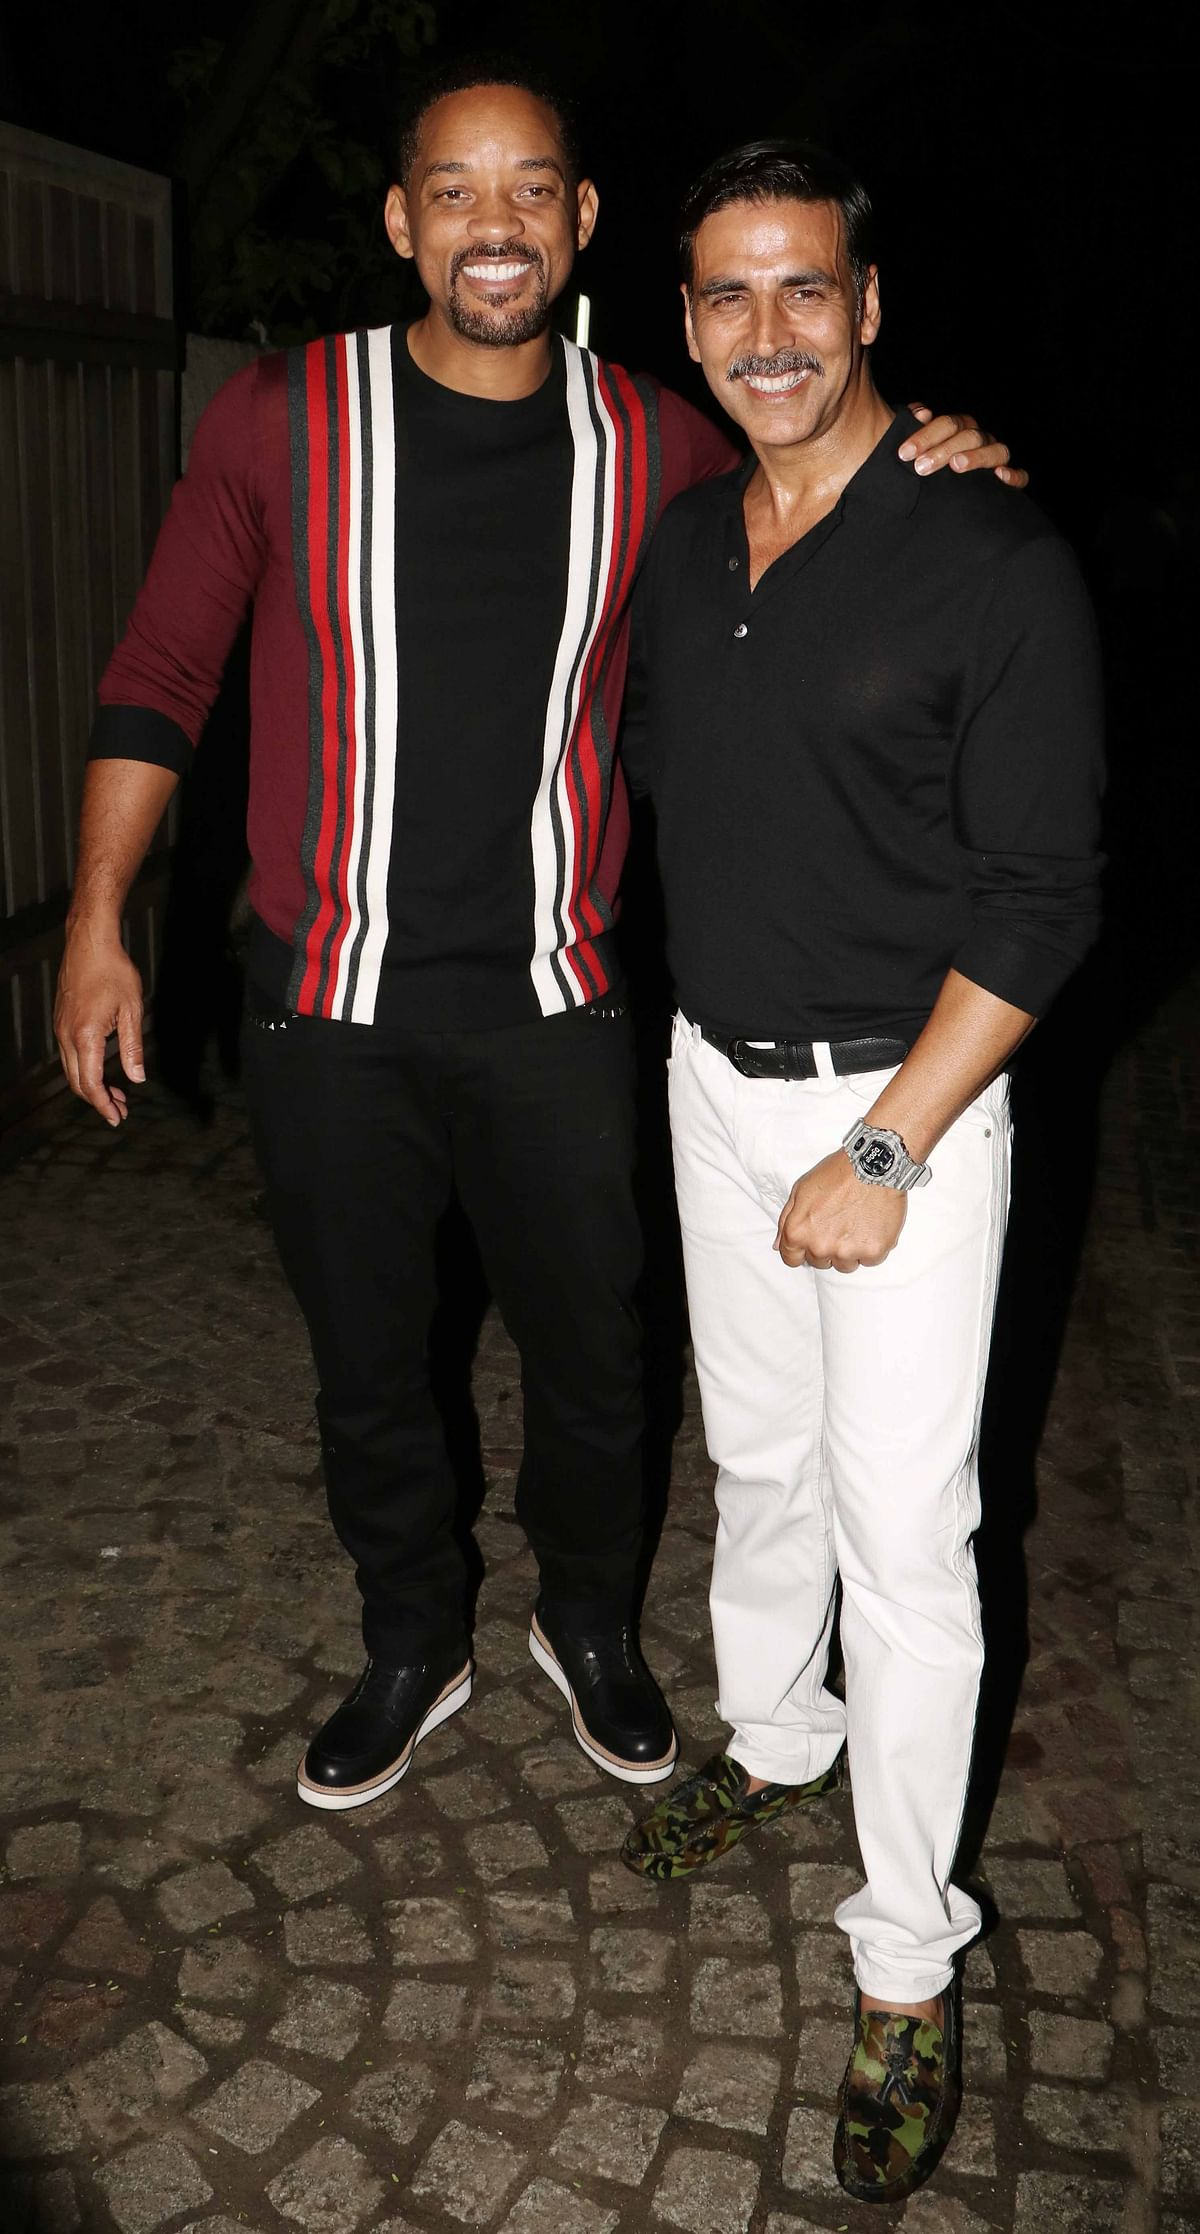 Will Smith with Akshay Kumar outside their residence. (Photo: Yogen Shah)